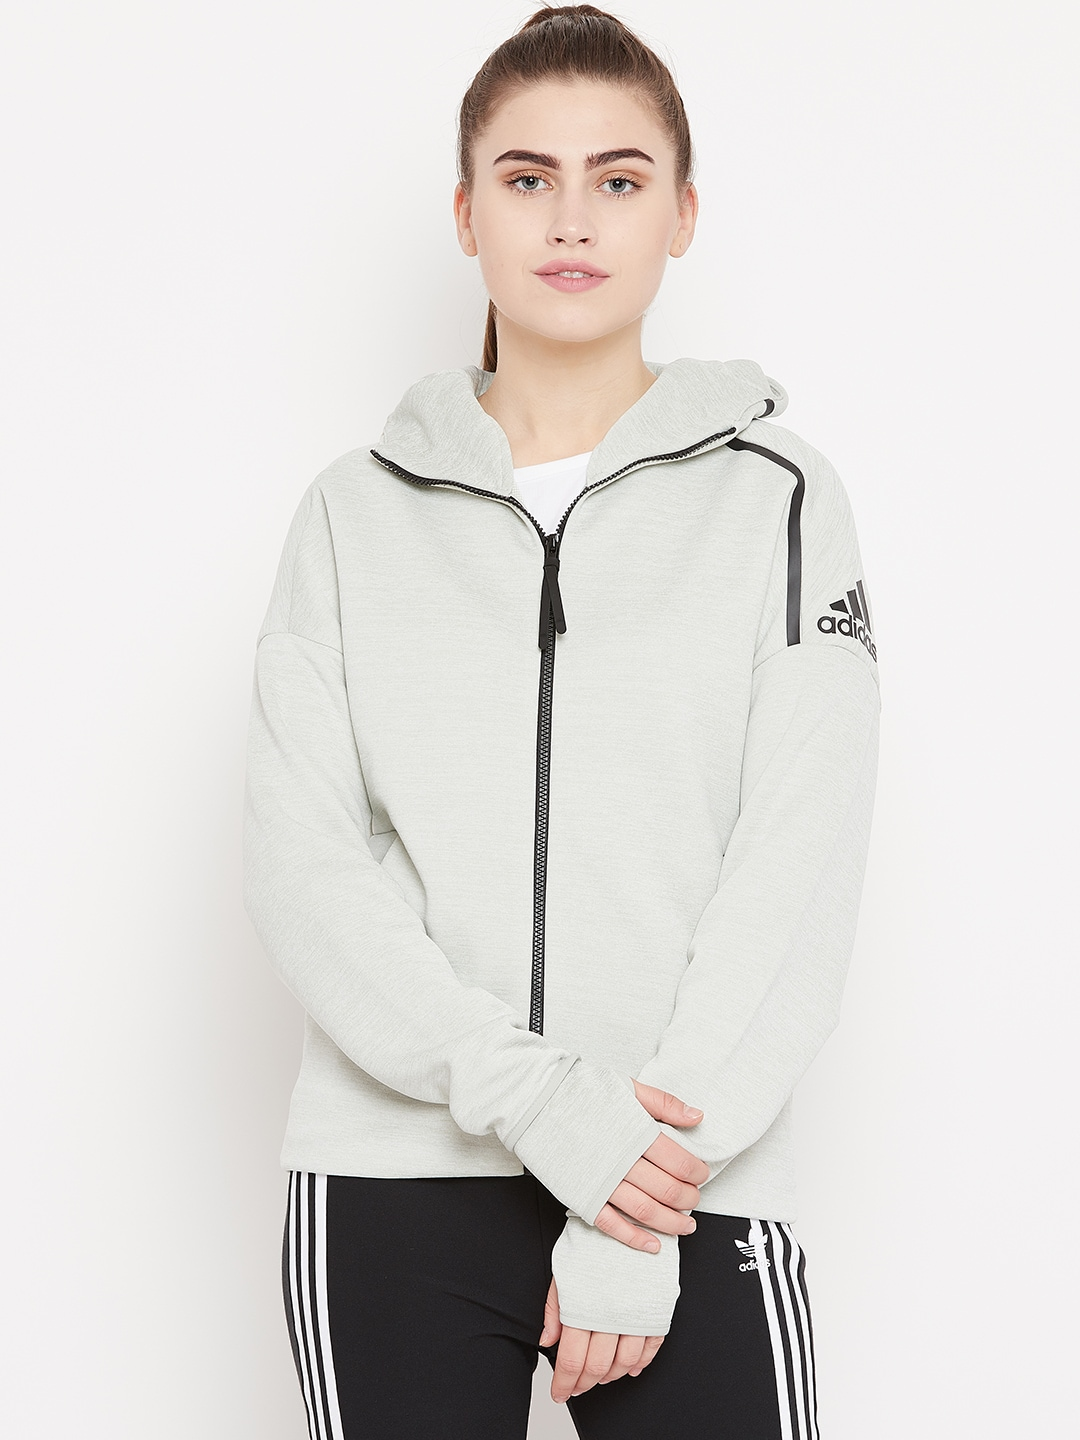 ea591cd5ed4 Adidas Sweatshirt Online India – EDGE Engineering and Consulting Limited